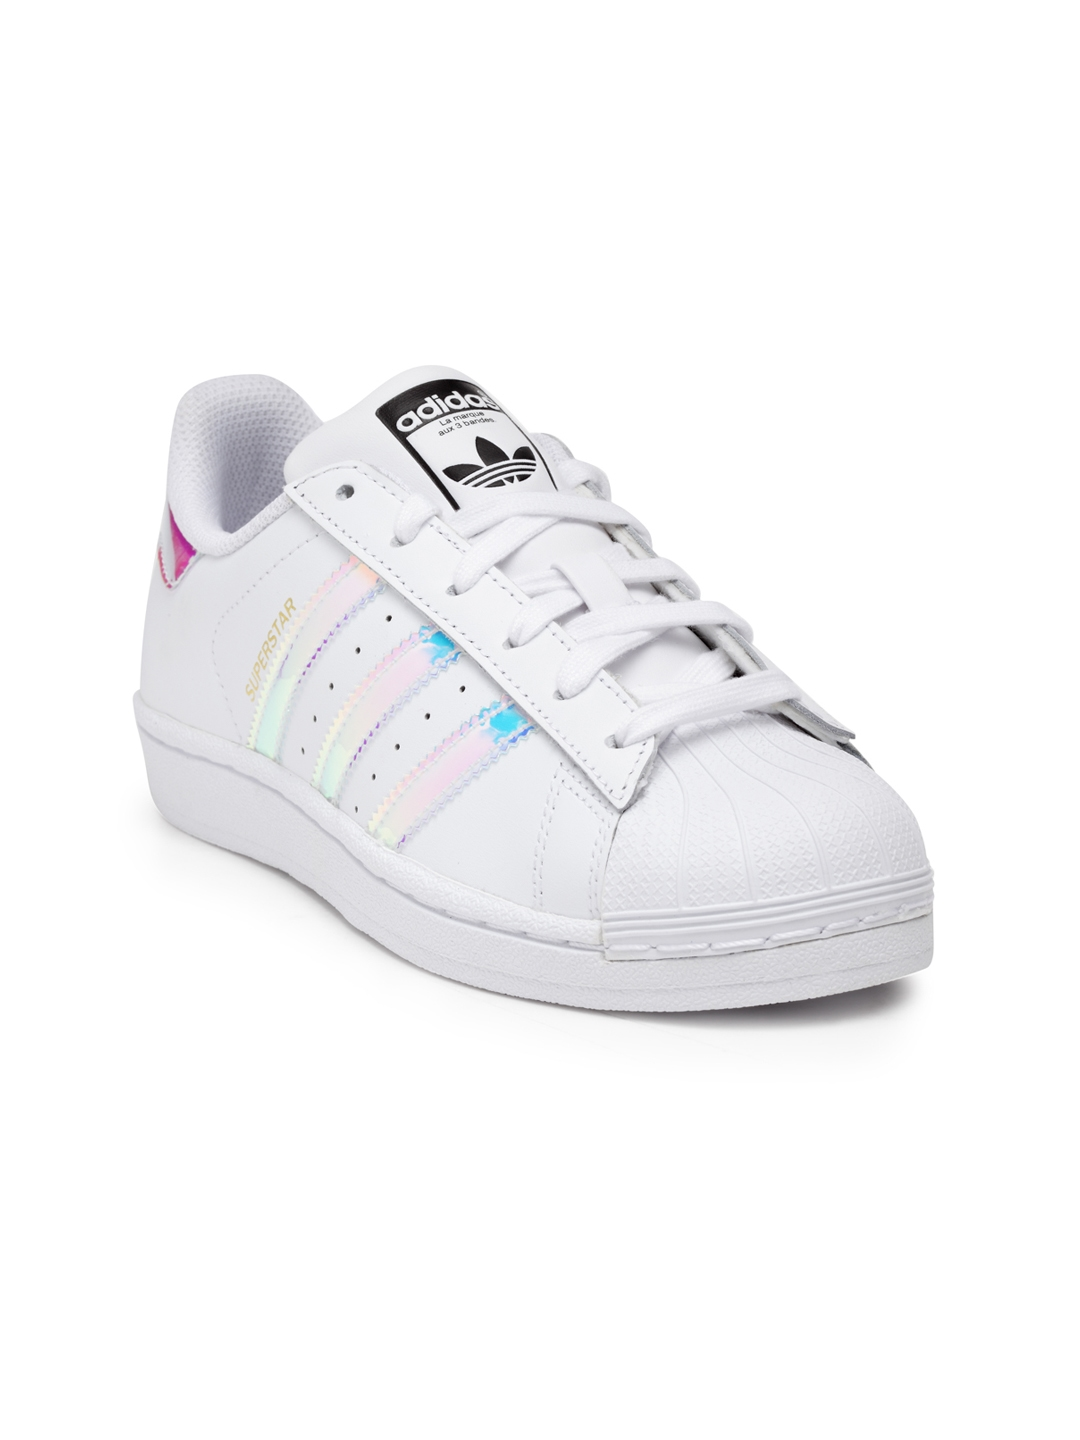 new styles 4d252 4a34c ADIDAS Originals Kids White Superstar Sneakers